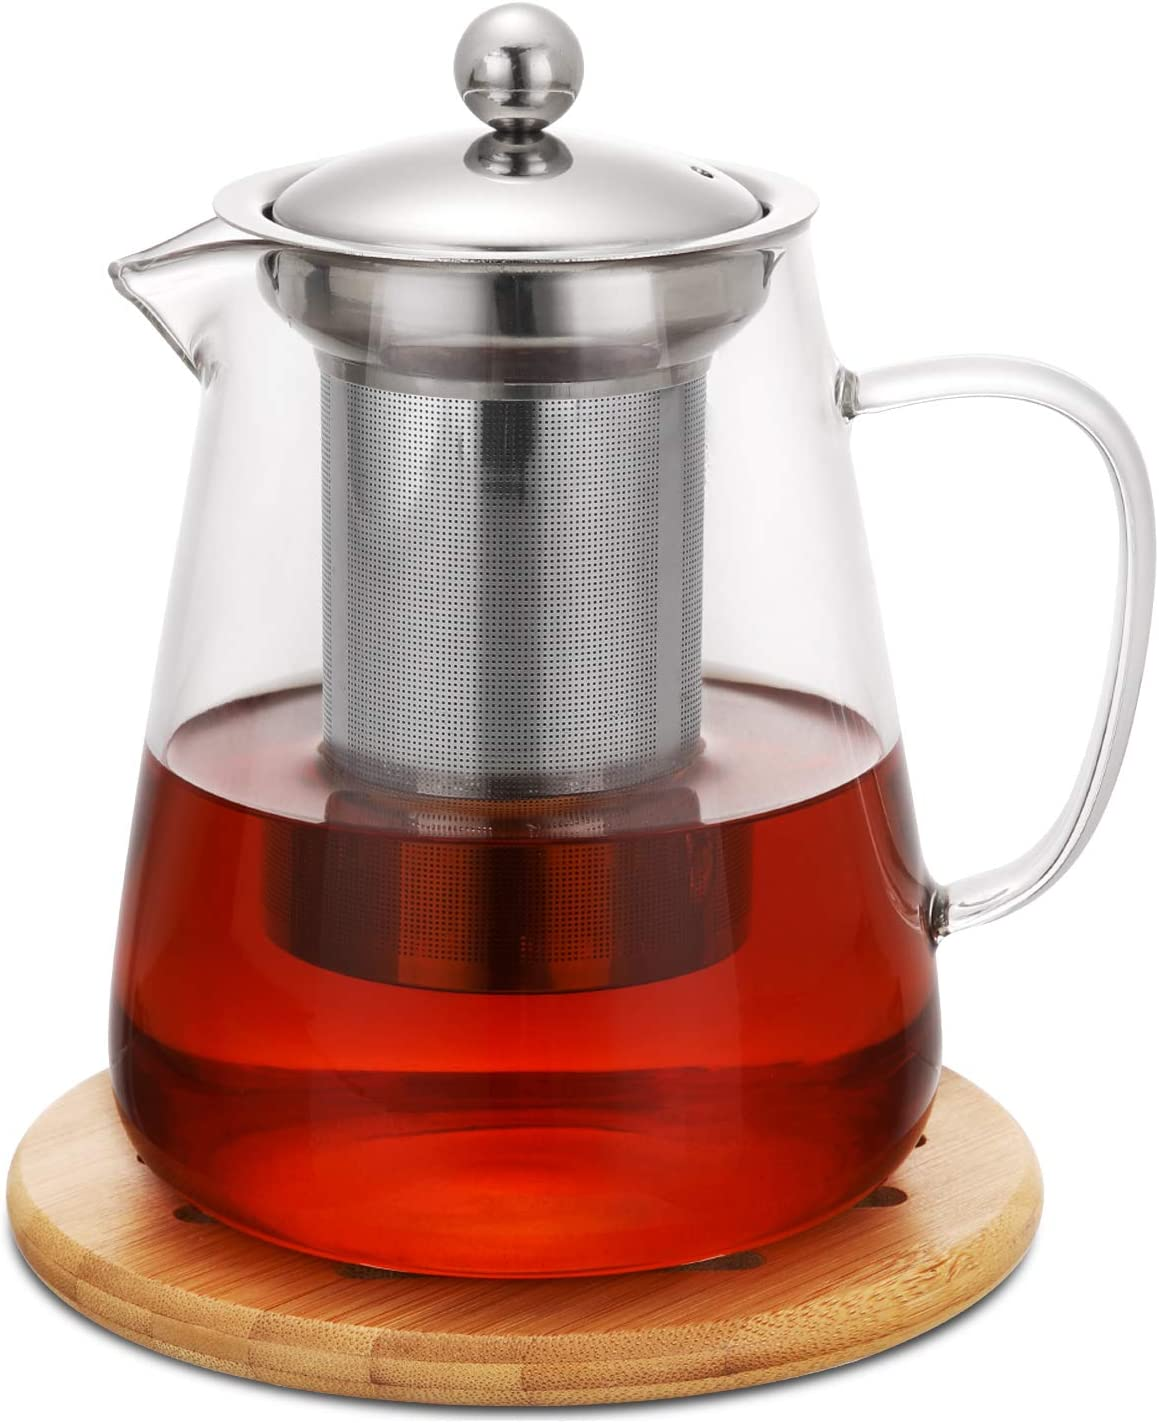 Amazon Com Hiware 32oz Stovetop Safe Glass Teapot With Removable Infuser Lead Free Glass Tea Kettle Tea Strainer Clear Tea Pot For Loose Leaf Tea Blooming Tea Tea Bags Coaster And